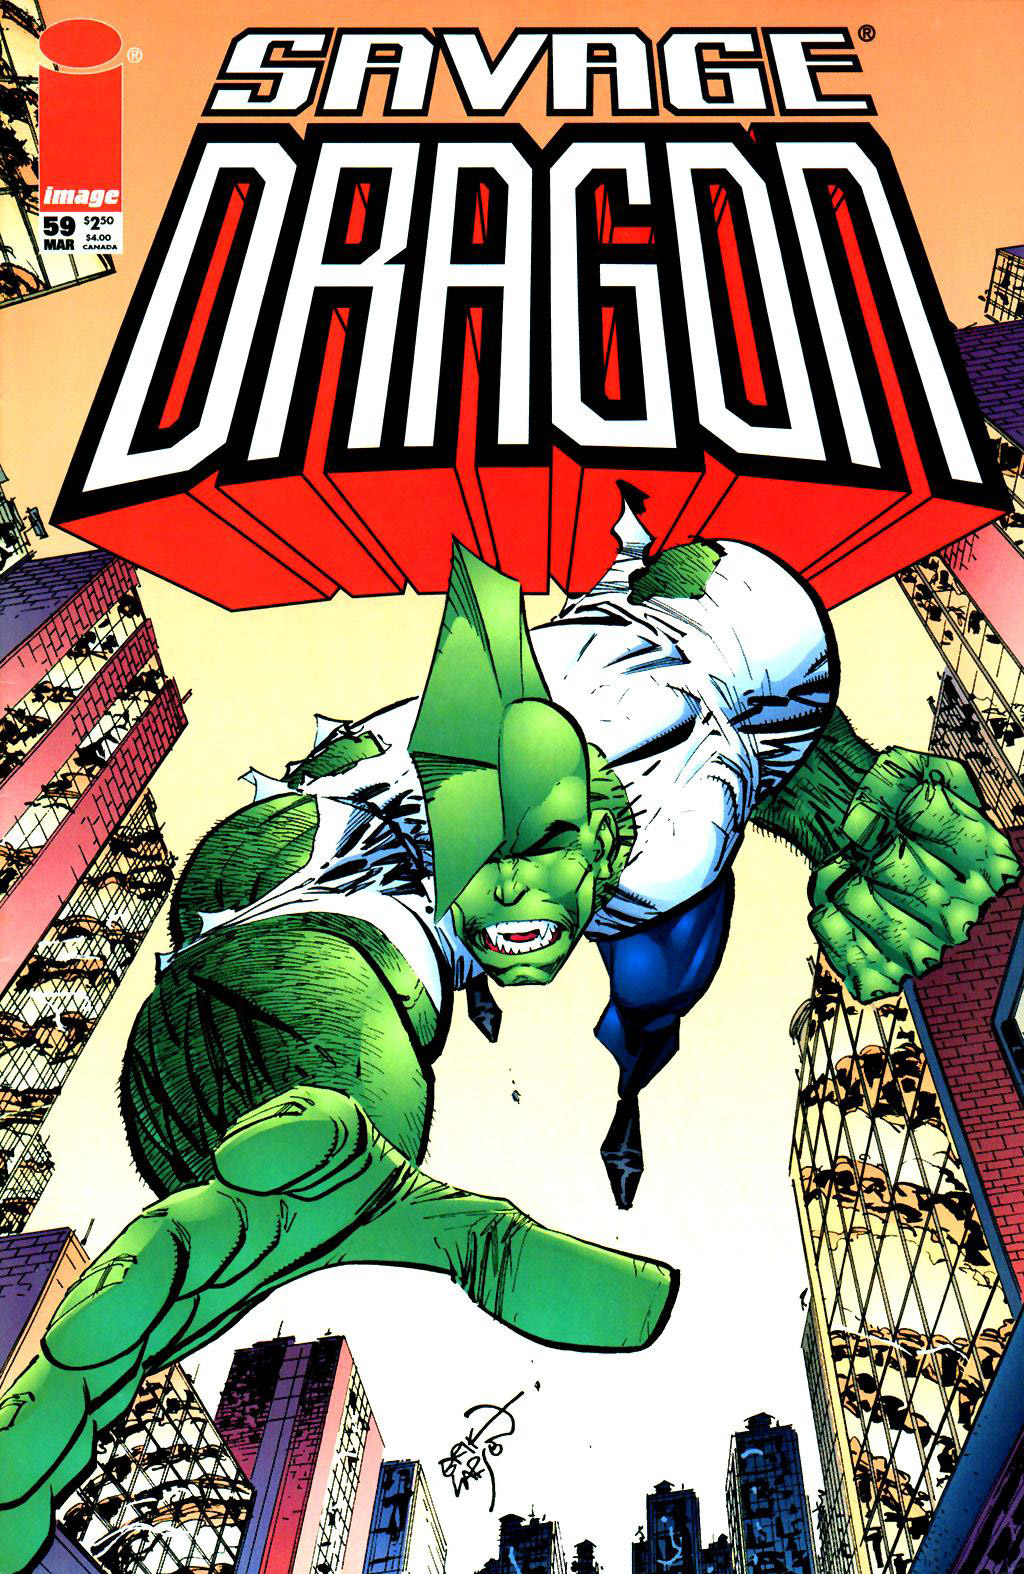 Cover Savage Dragon Vol.2 #59